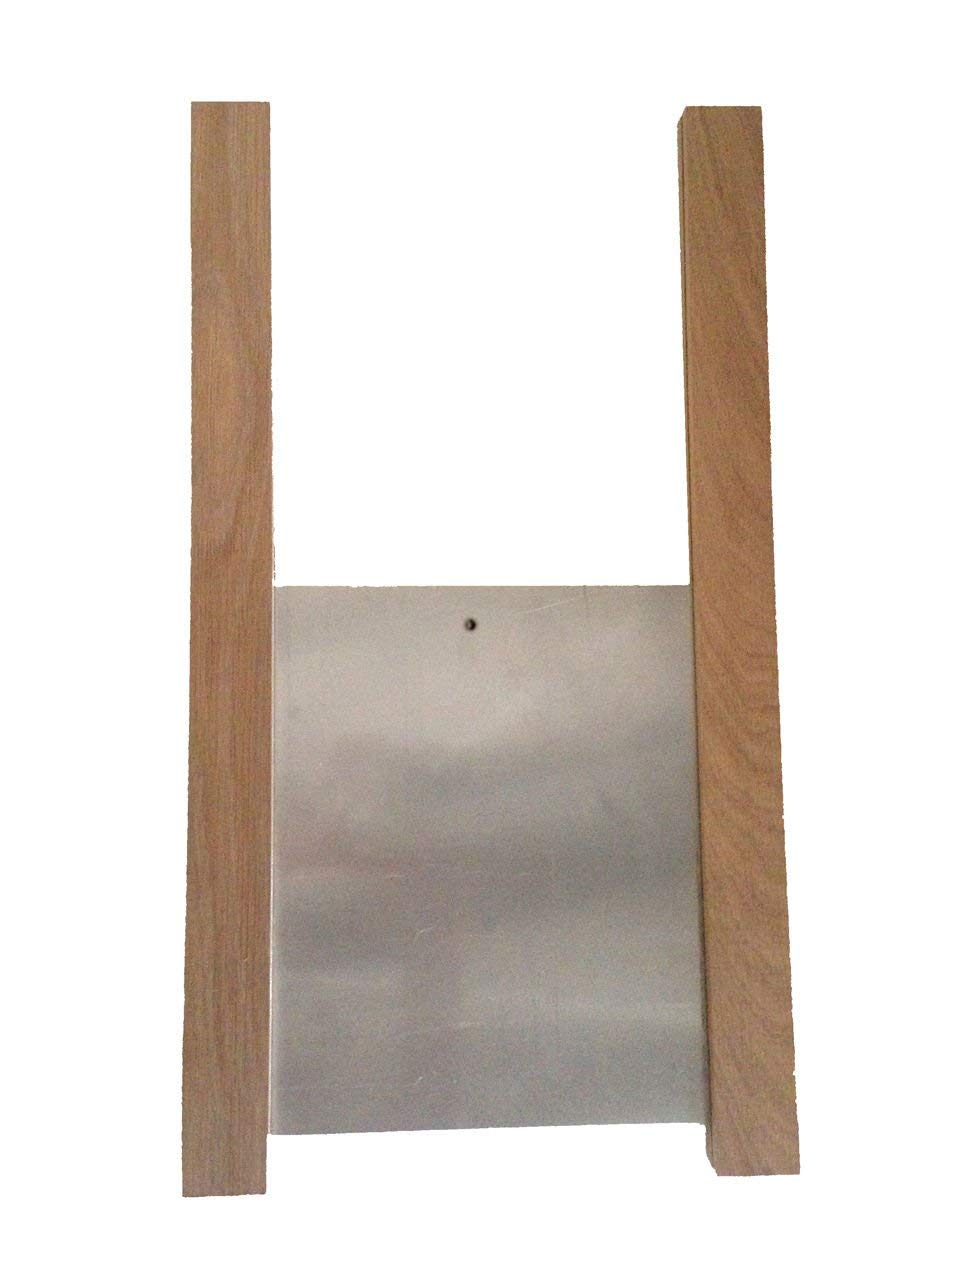 ChickenGuard Chicken Coop Pop Door Kit - Oak Runners & Aluminum Door Panel